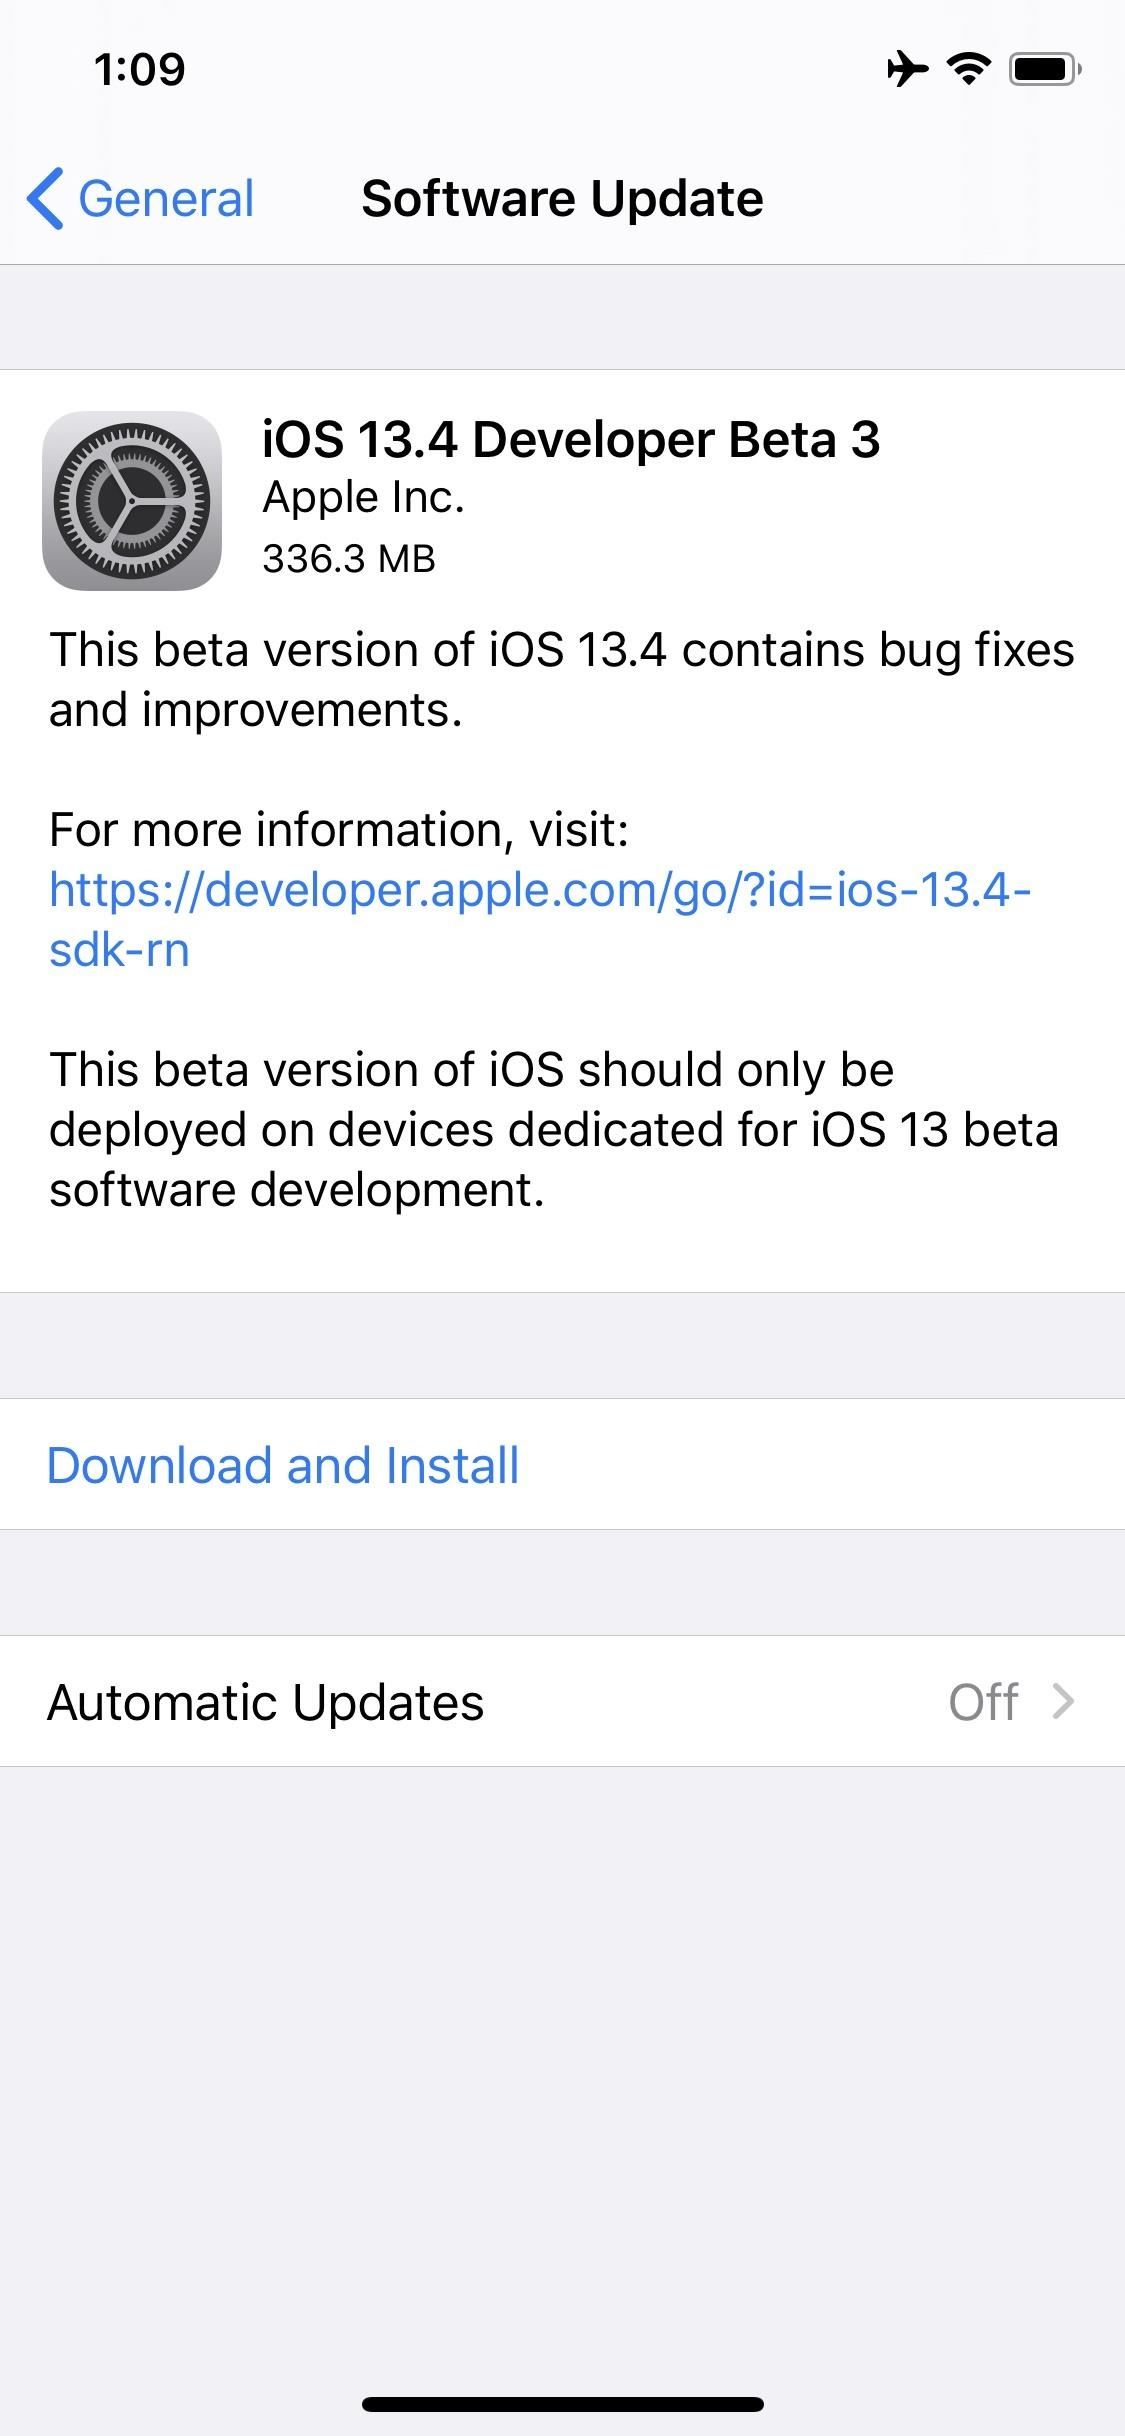 Apple Releases iOS 13.4 Developer Beta 3 for iPhone, Introduces First Evidence of Internet-Based 'OS Recovery' Mode